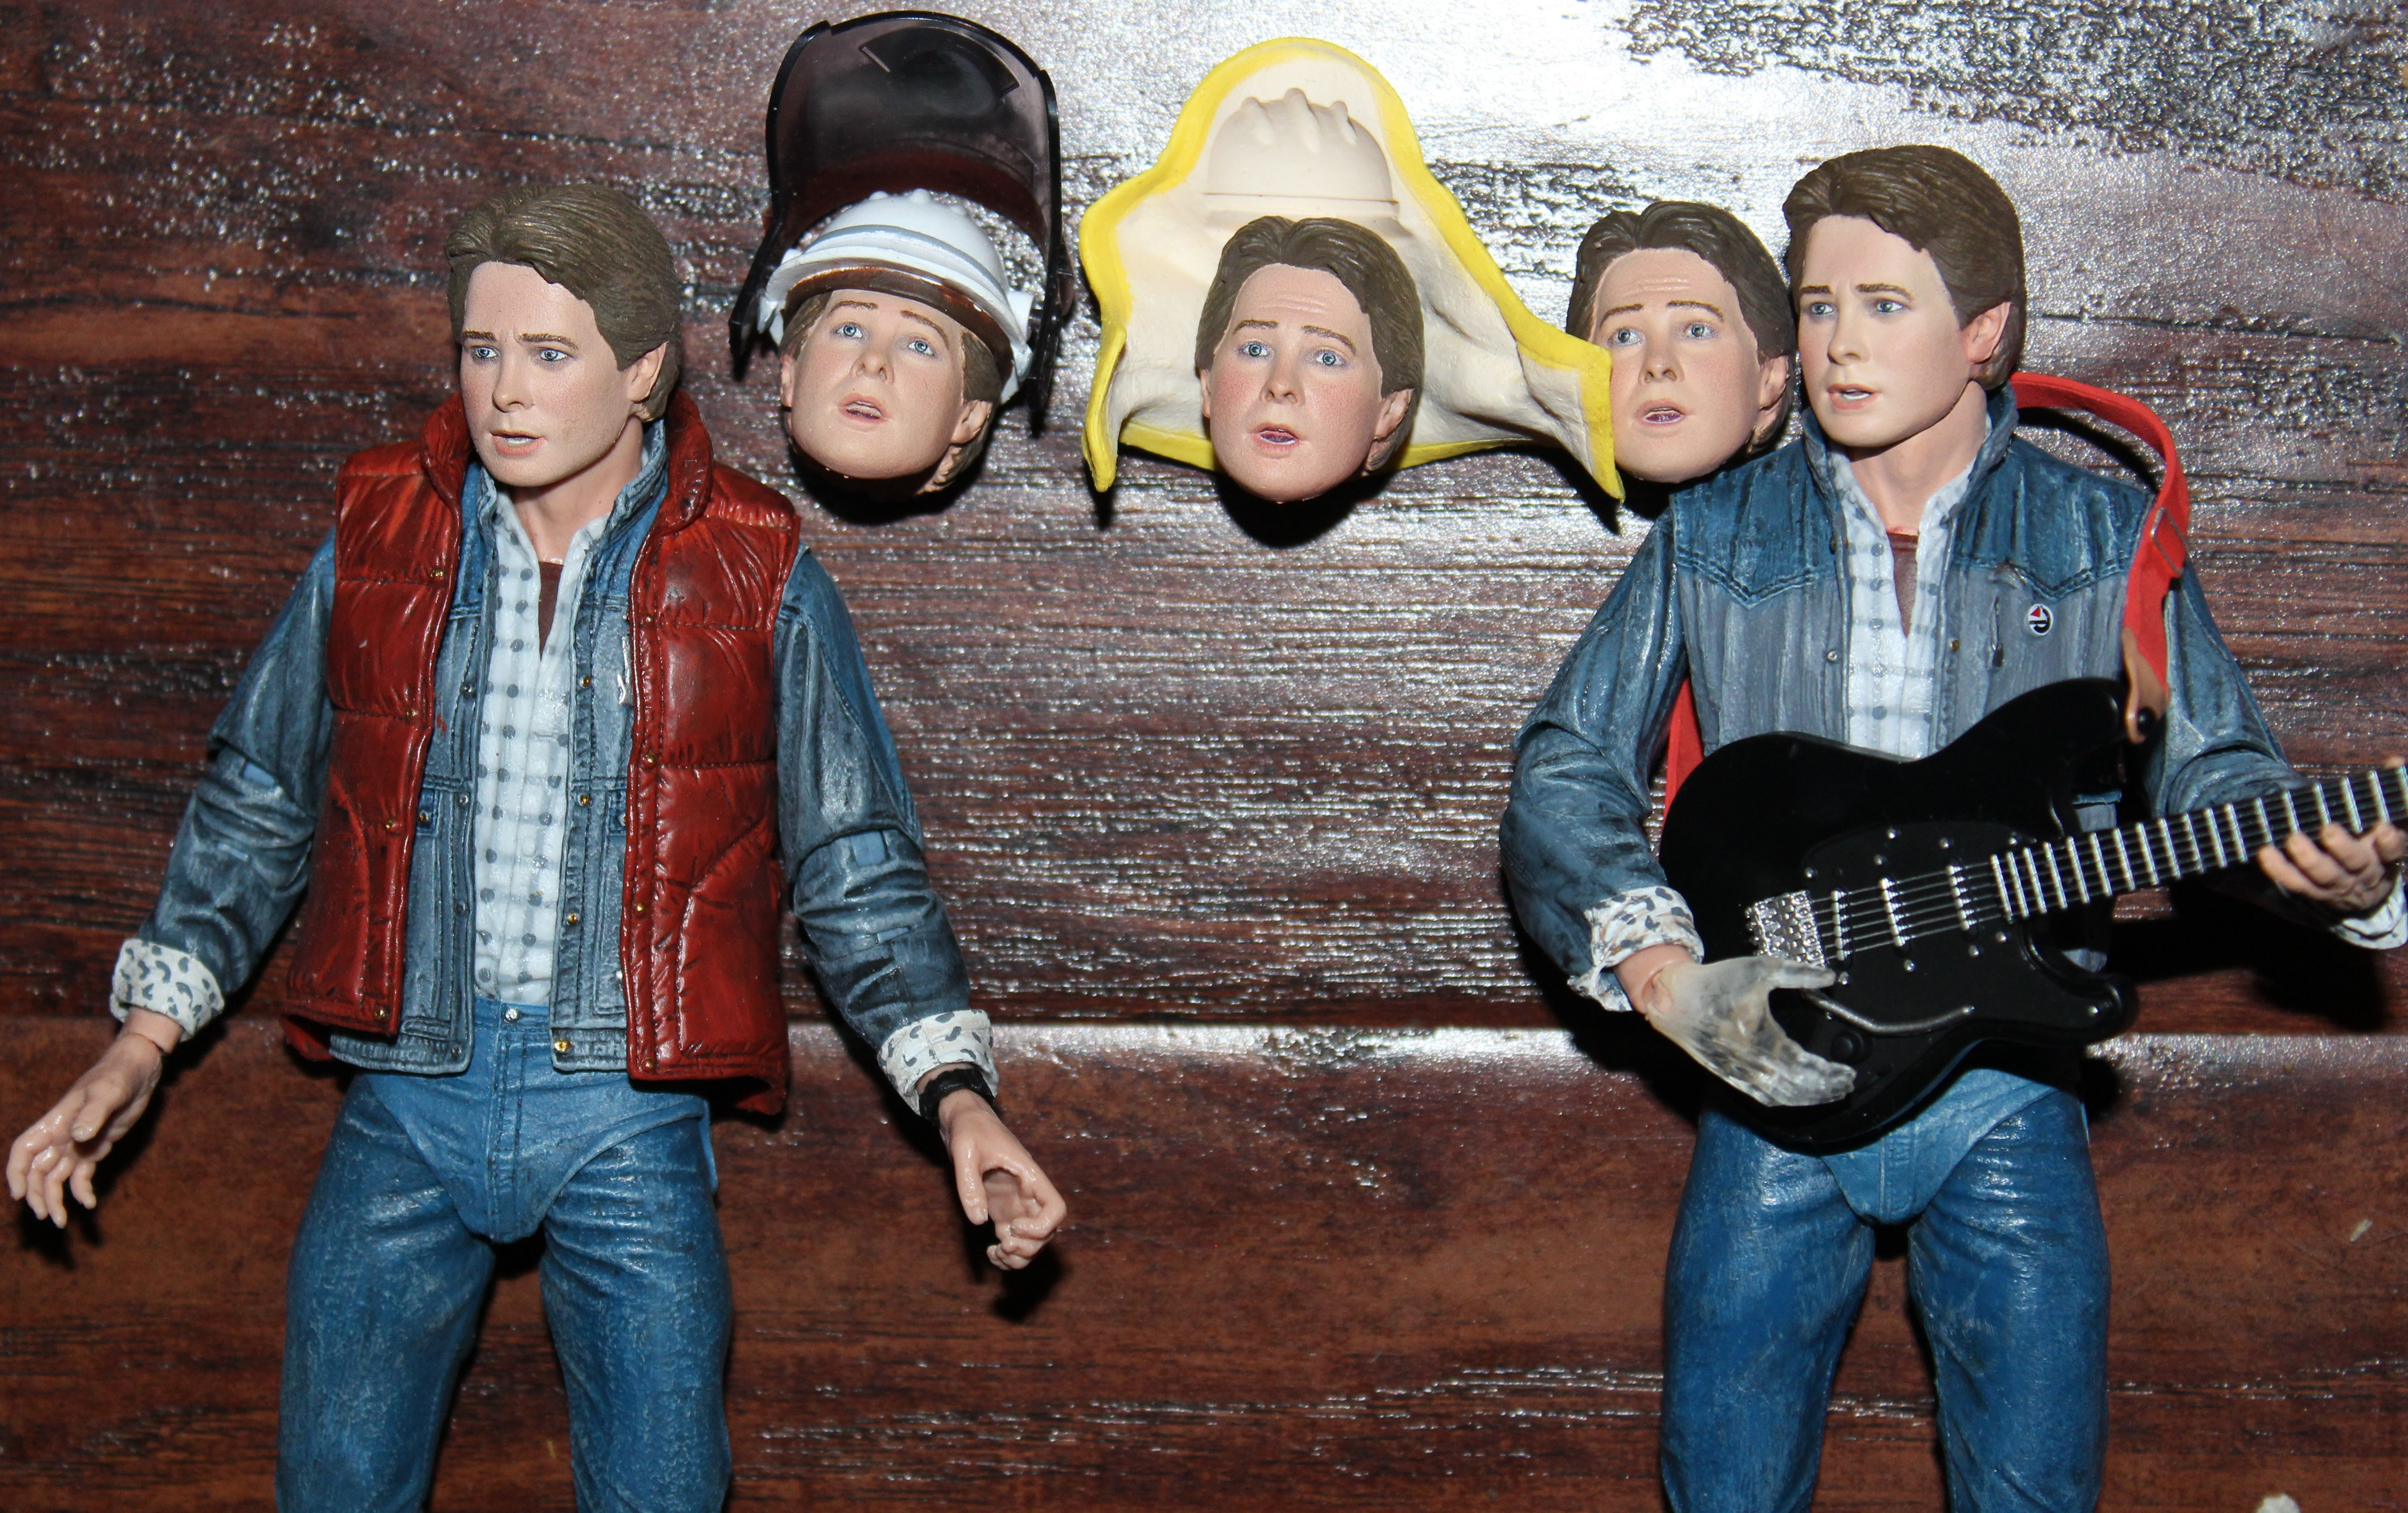 Heads of Marty